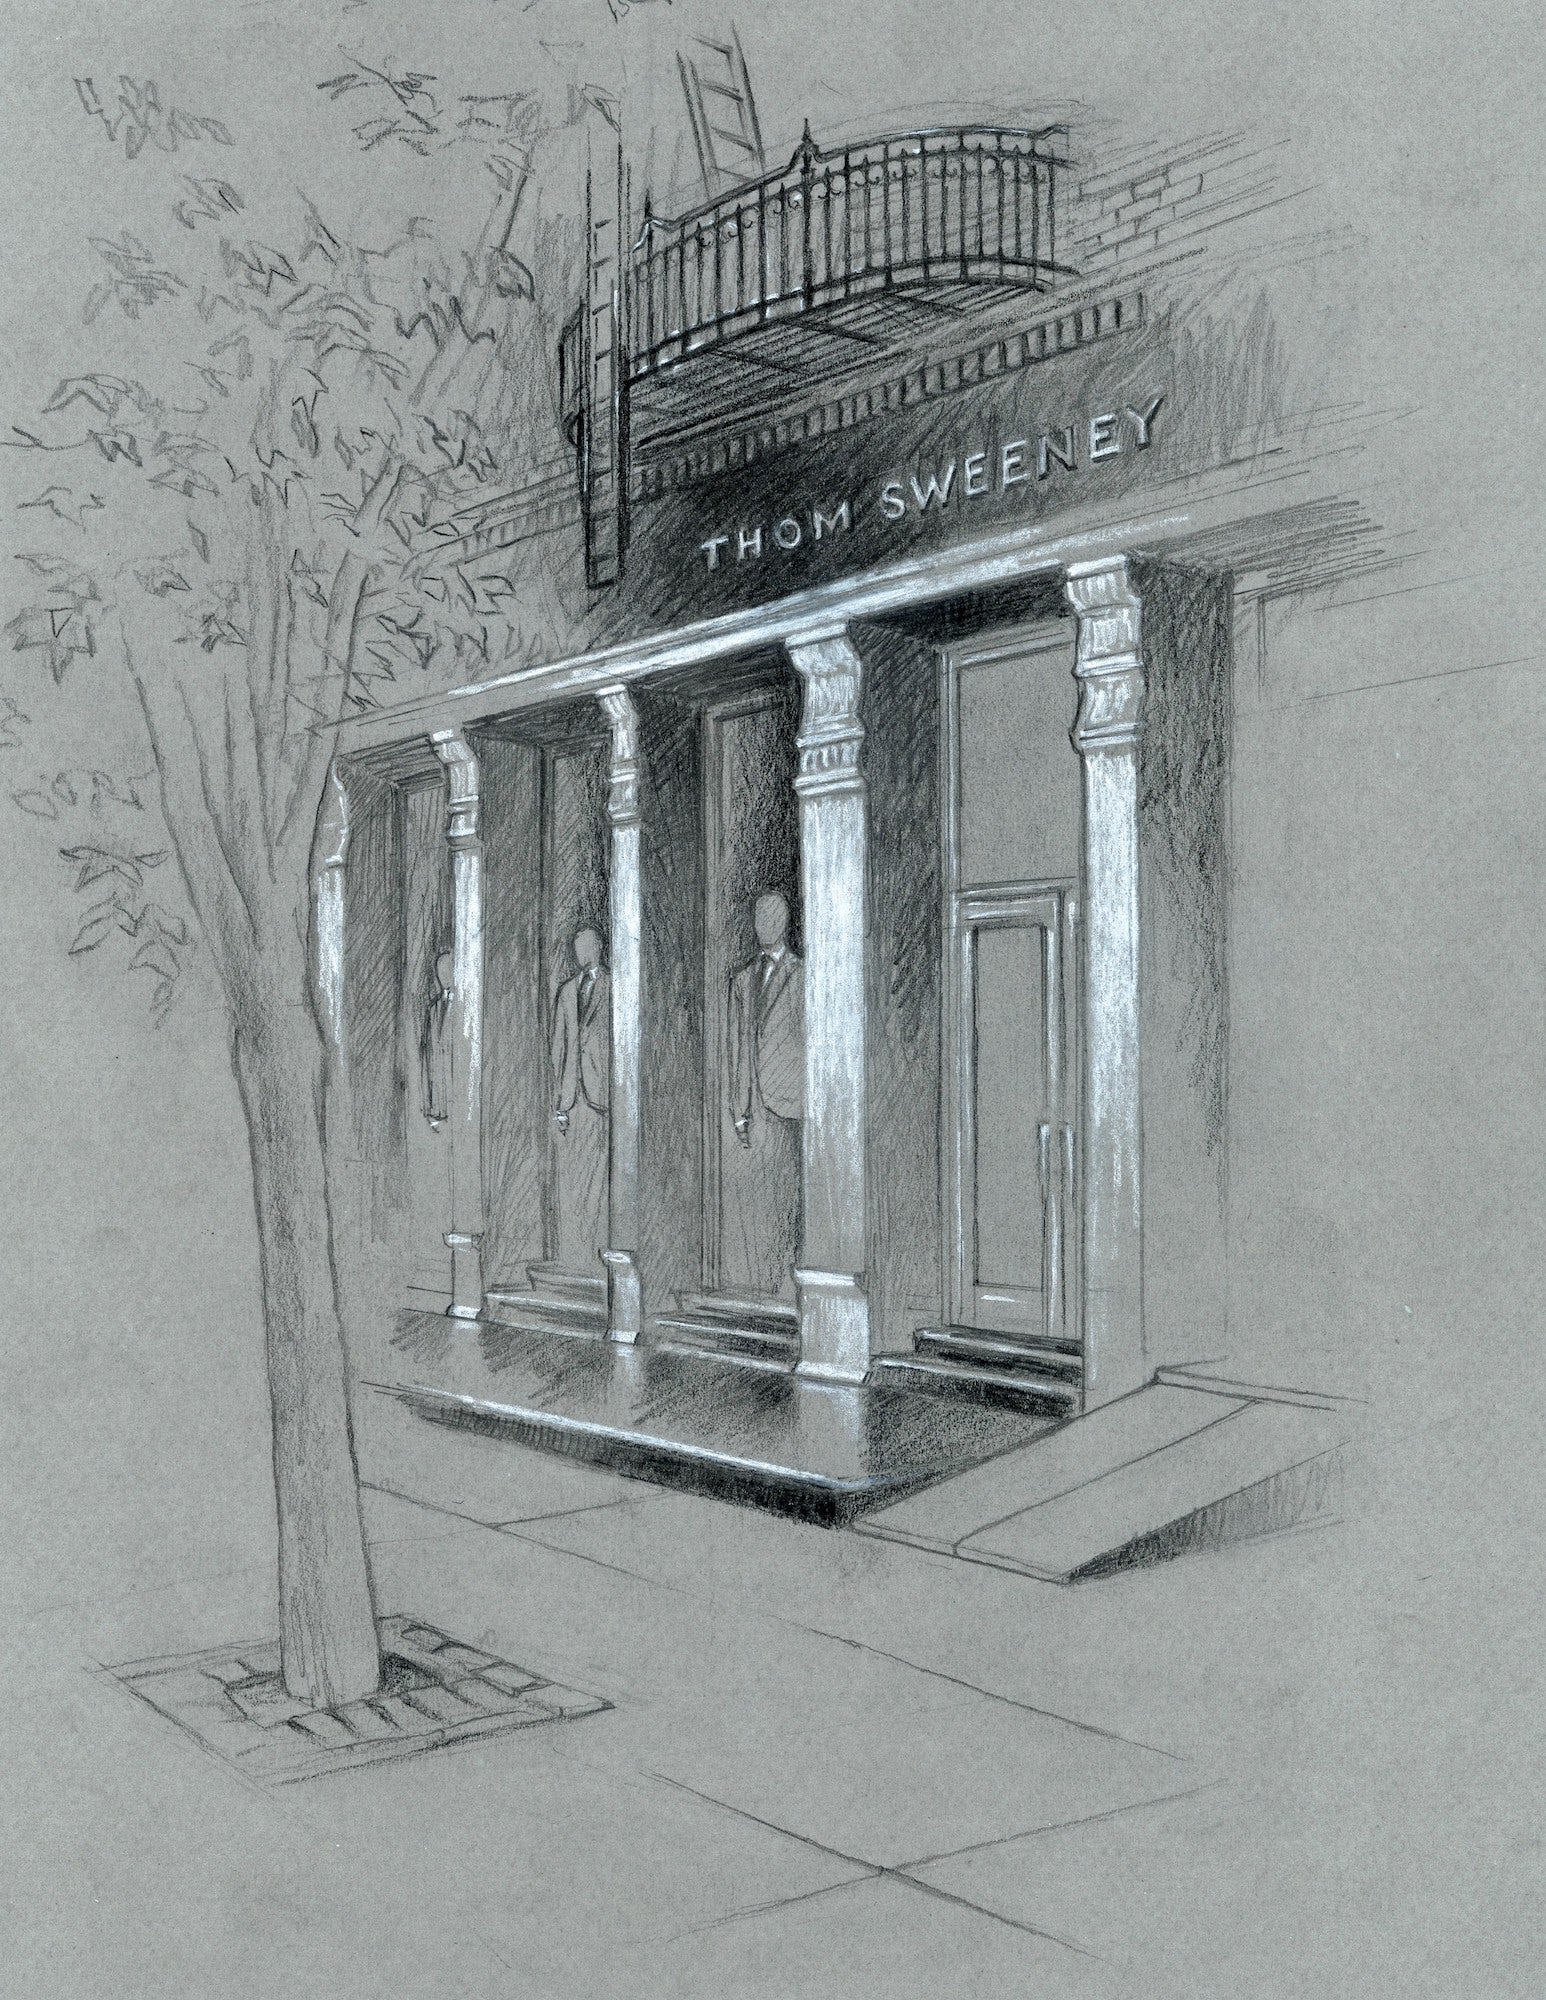 Thom Sweeney's 362 West Broadway, New York store sketch | Source: Courtesy